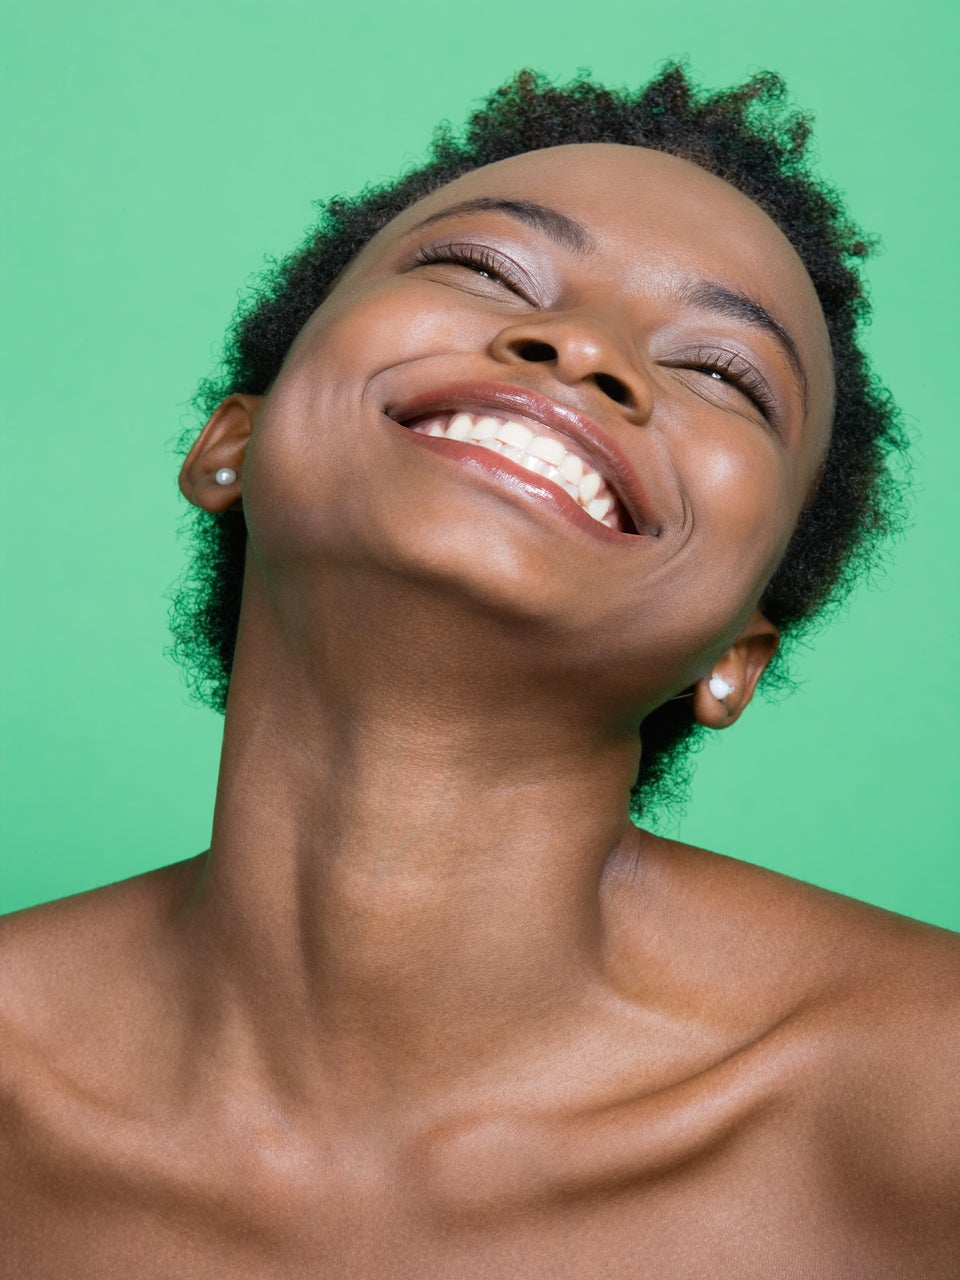 9 Cruelty-Free And Vegan Beauty Brands You Should Know About To Protect Your Melanin Magic